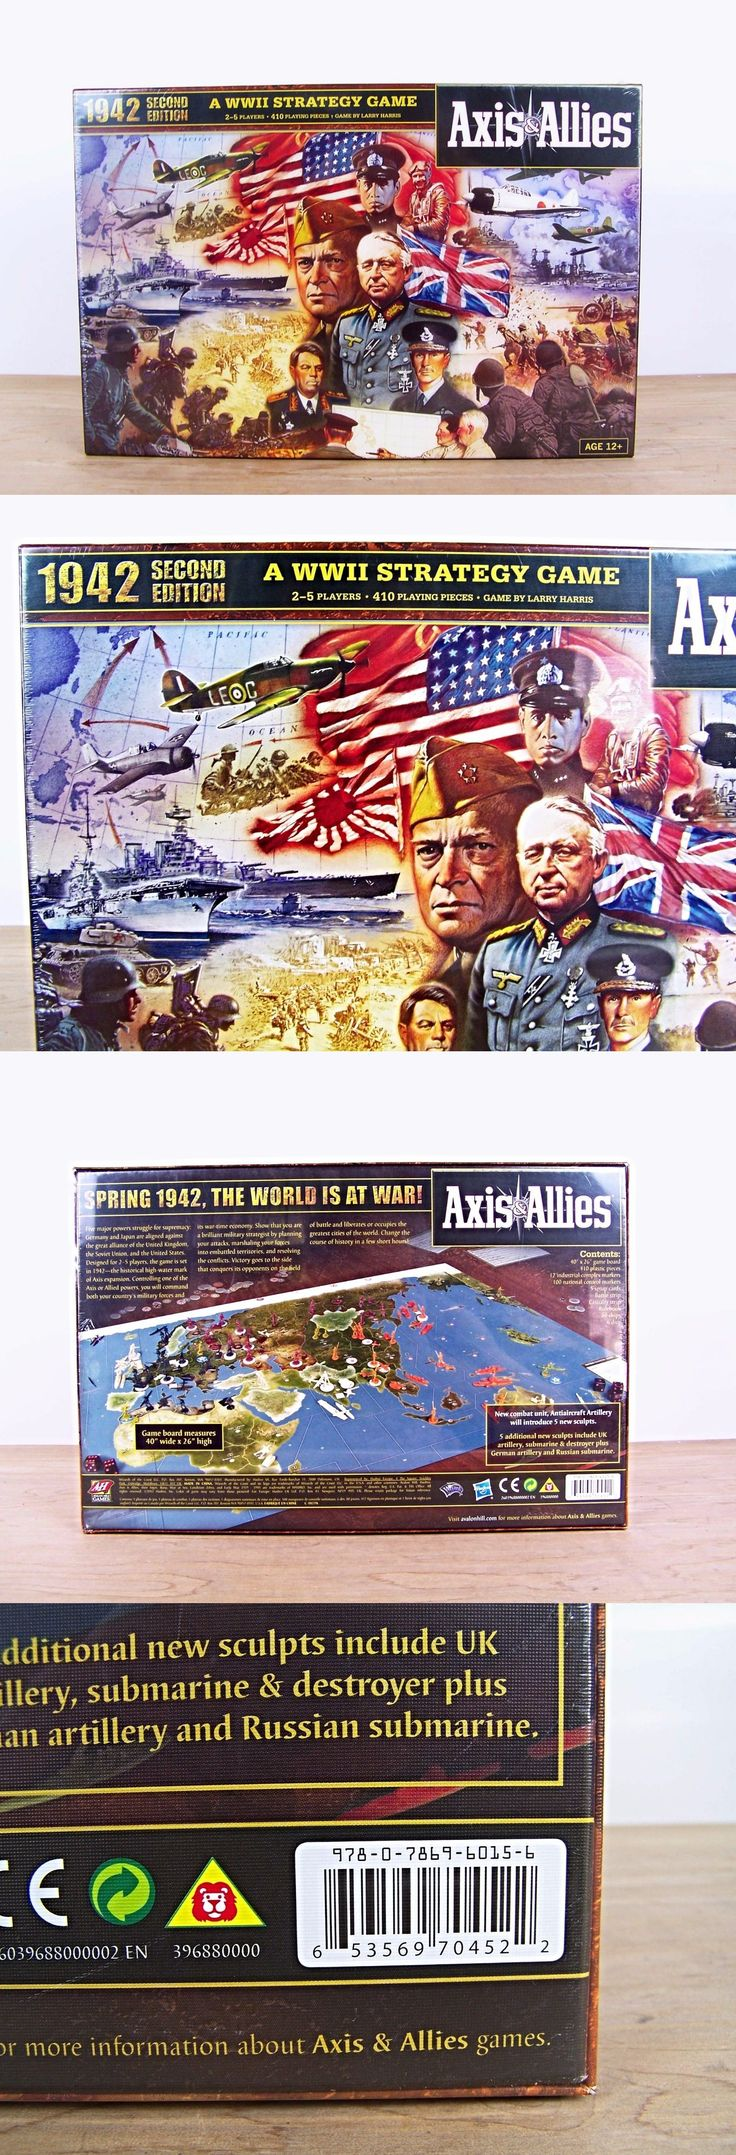 Frederick gent school olympic legacy structure inspiration from - Axis And Allies 158731 Axis And Allies 1942 Second Edition A Wwii Strategy Game